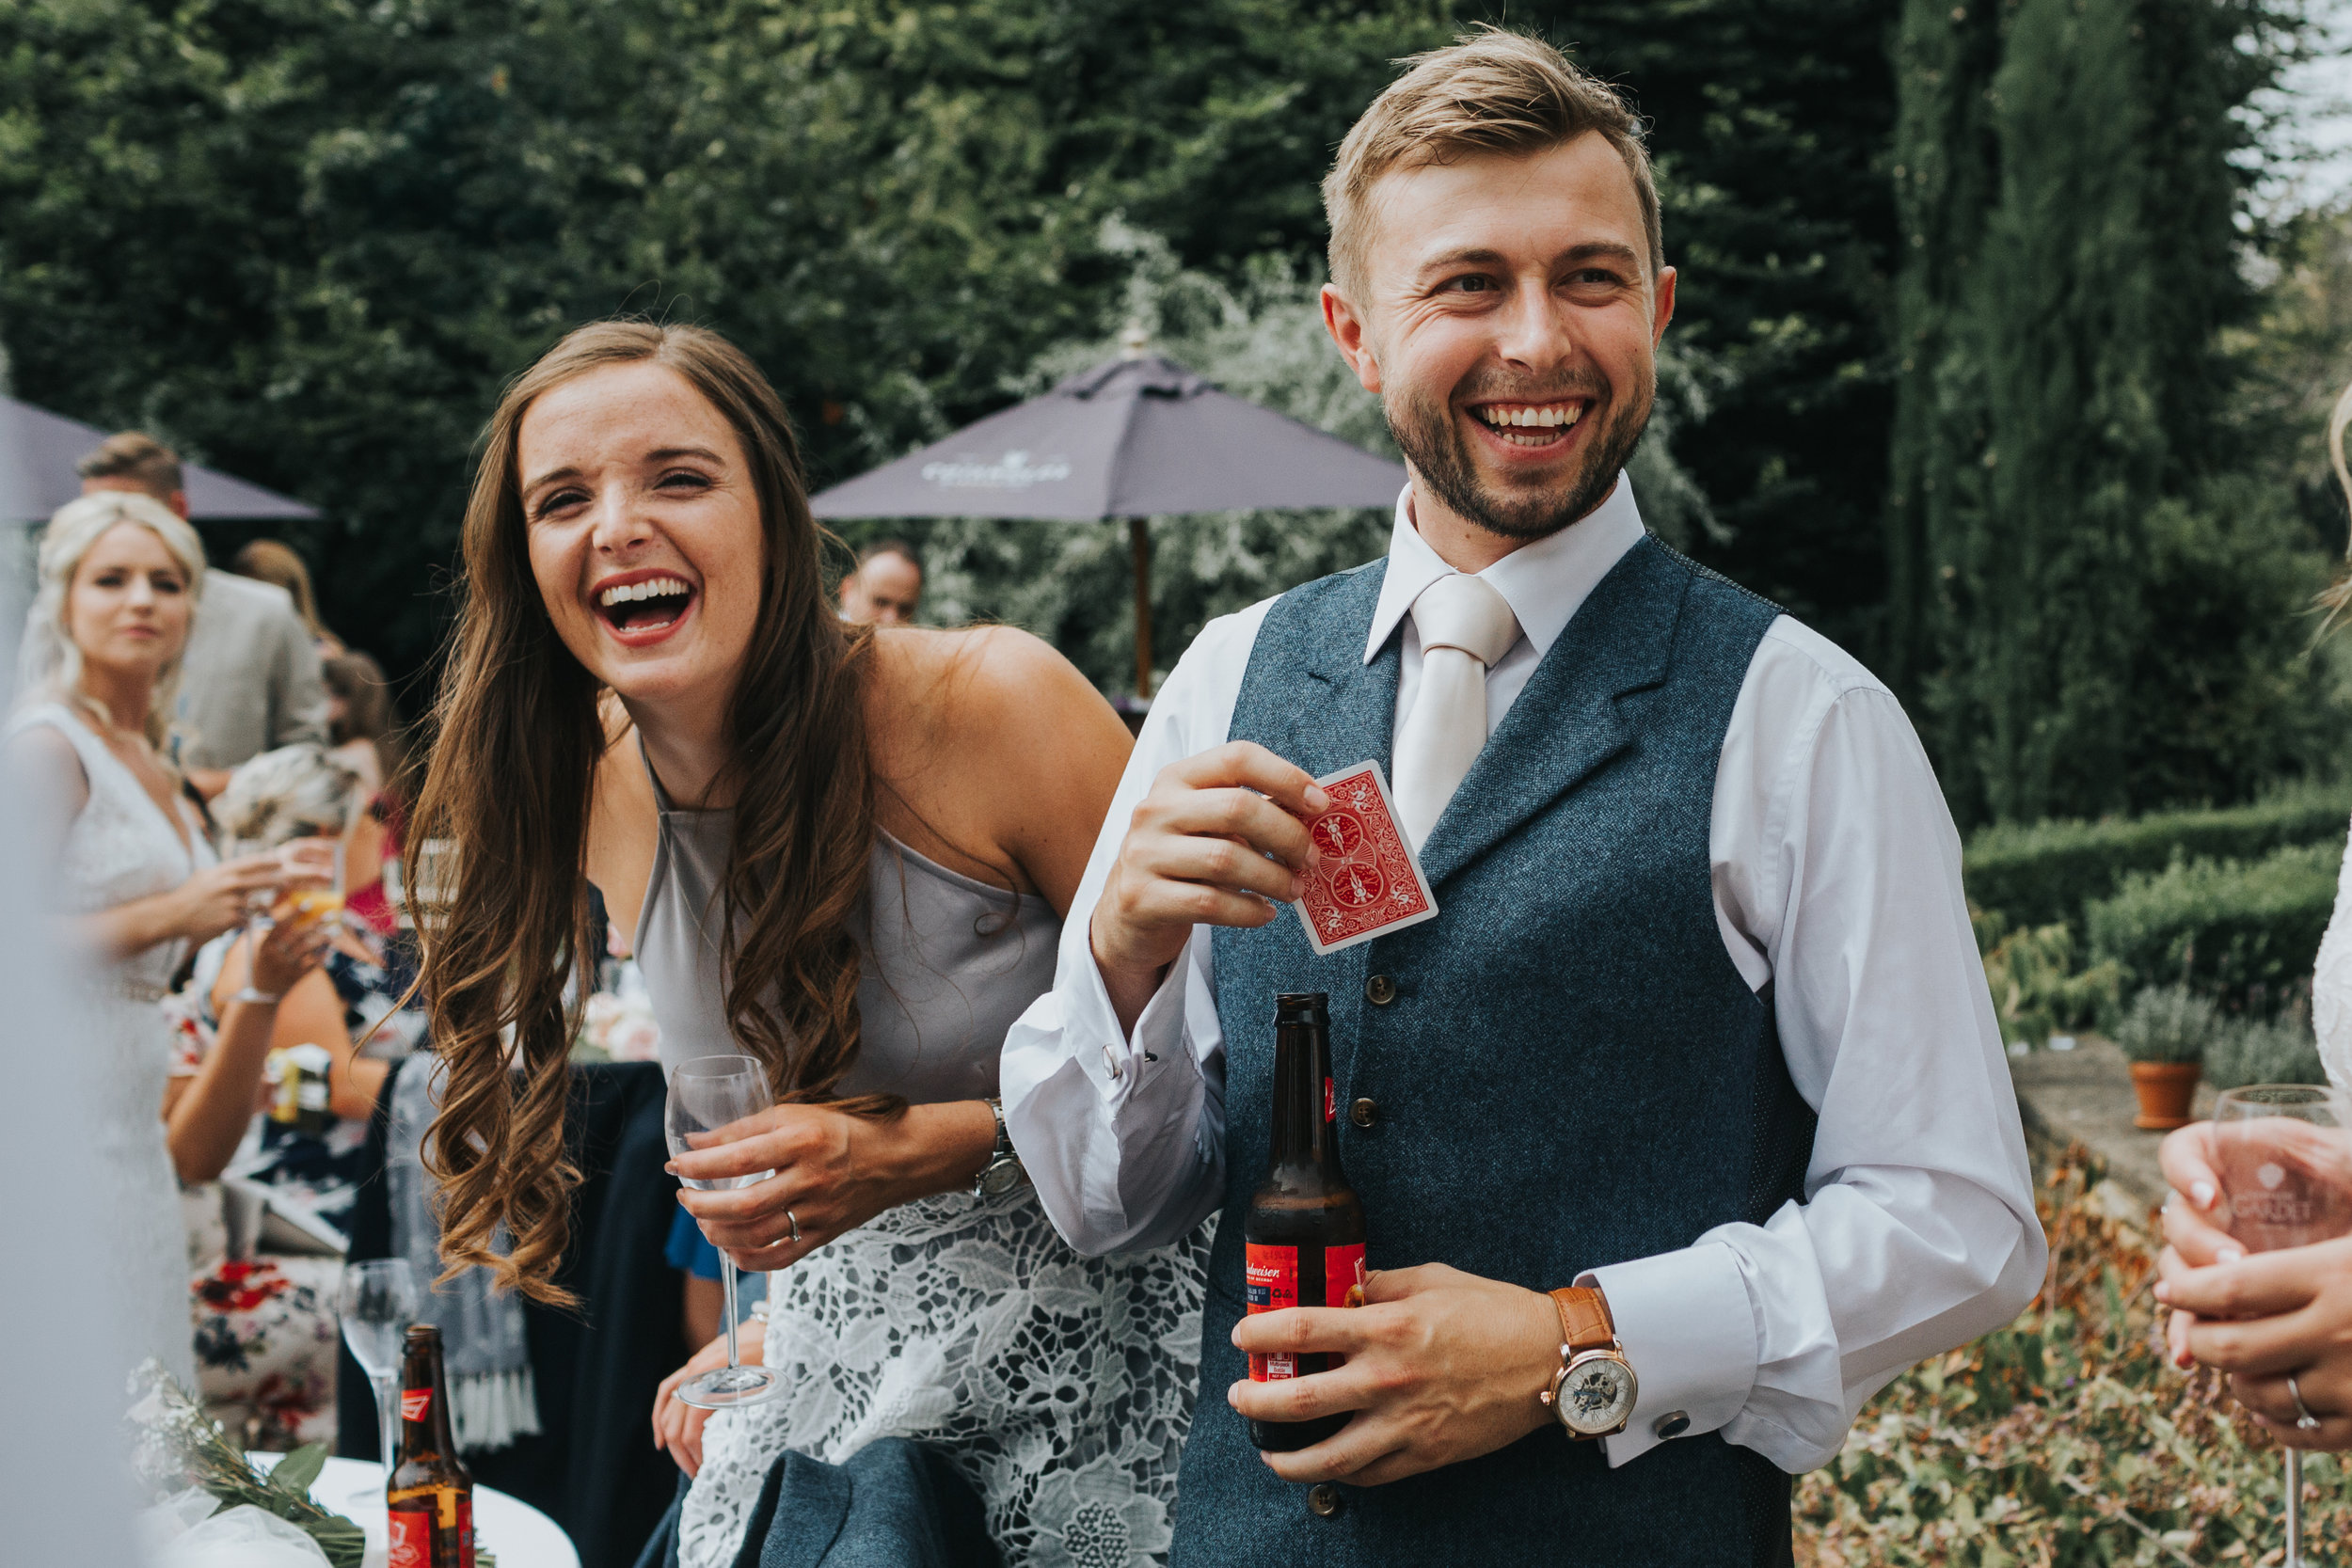 Wedding guests laugh together while playing cards at outdoor wedding, UK.